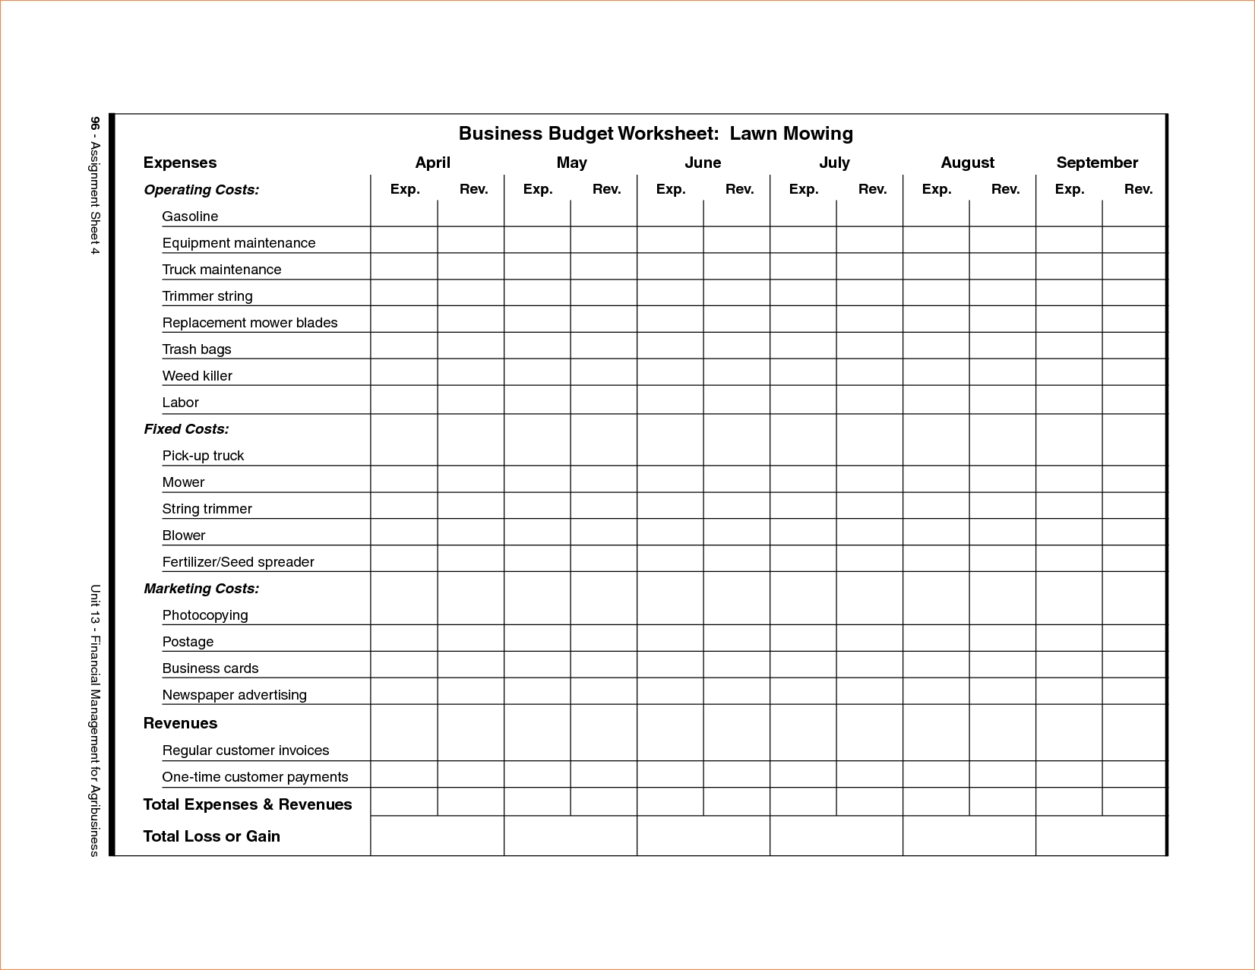 Lawn Care Schedule Spreadsheet And Lawn Care Business Expenses With Lawn Care Business Expenses Spreadsheet